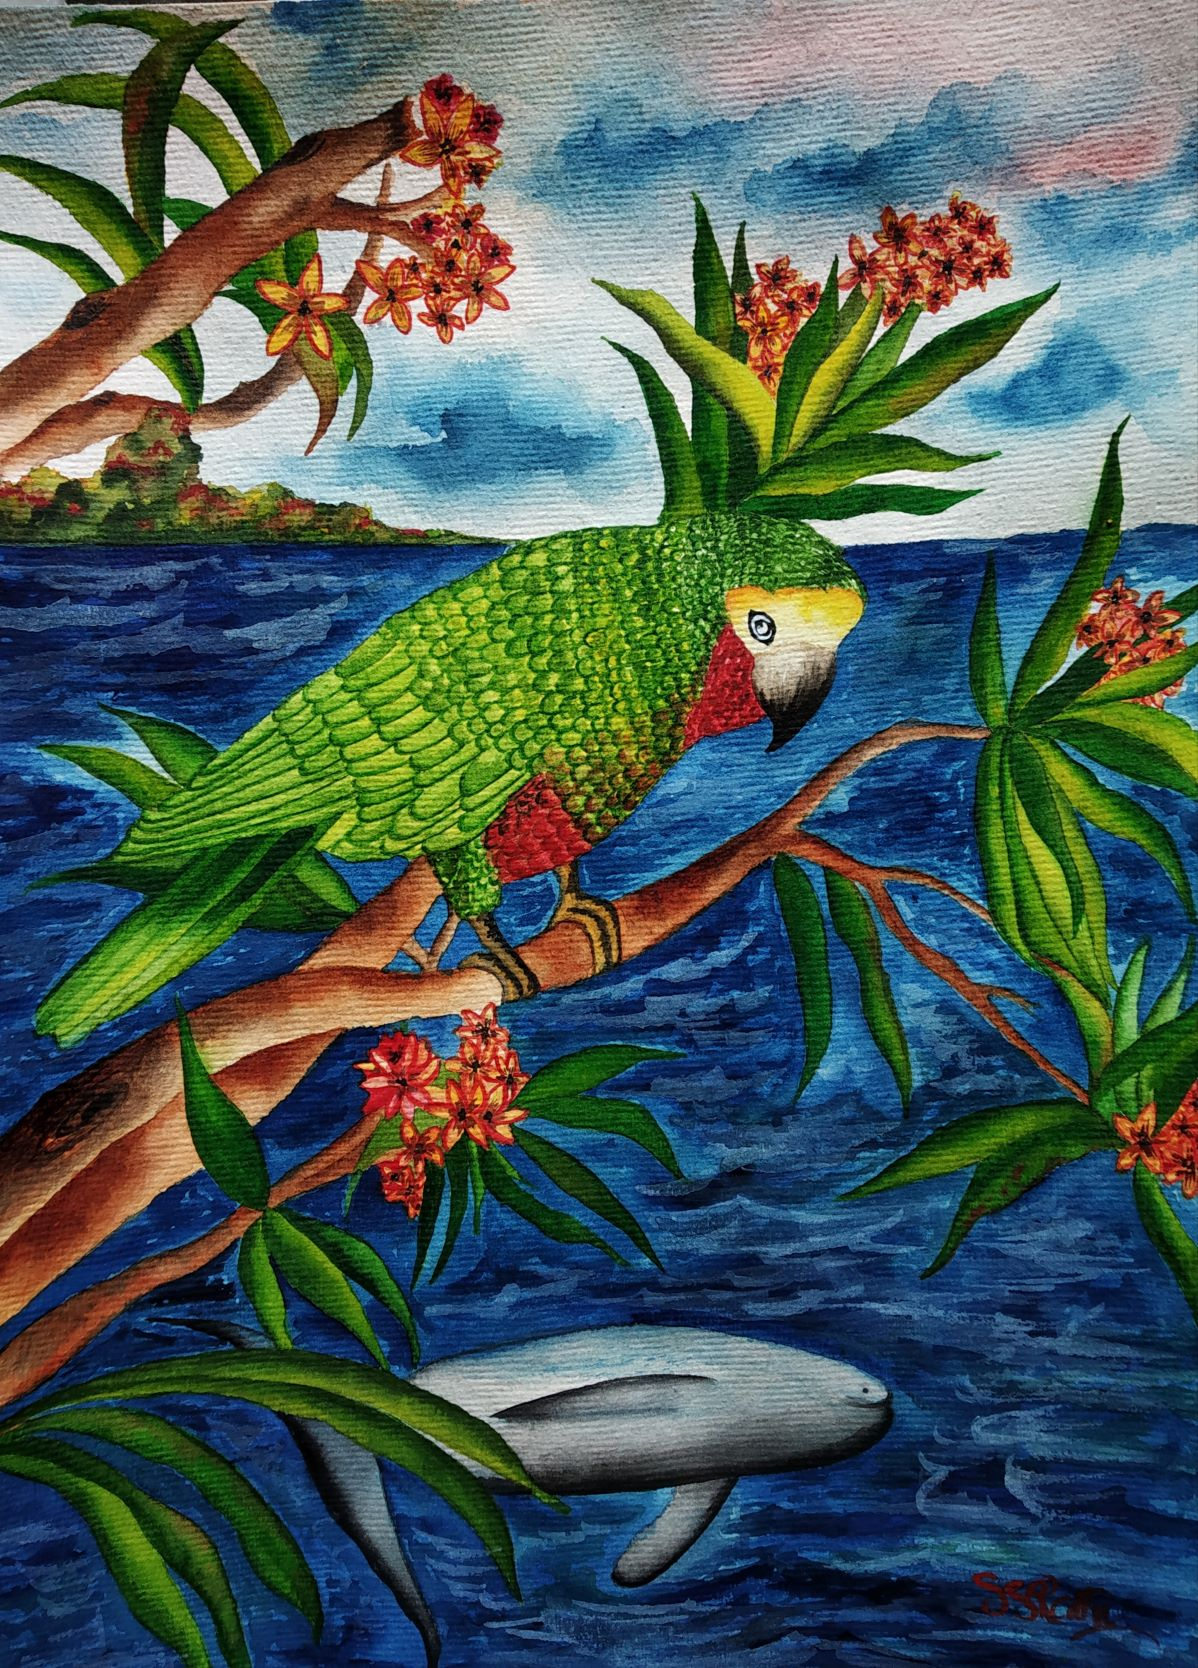 1601483175_natural-beauty.jpg